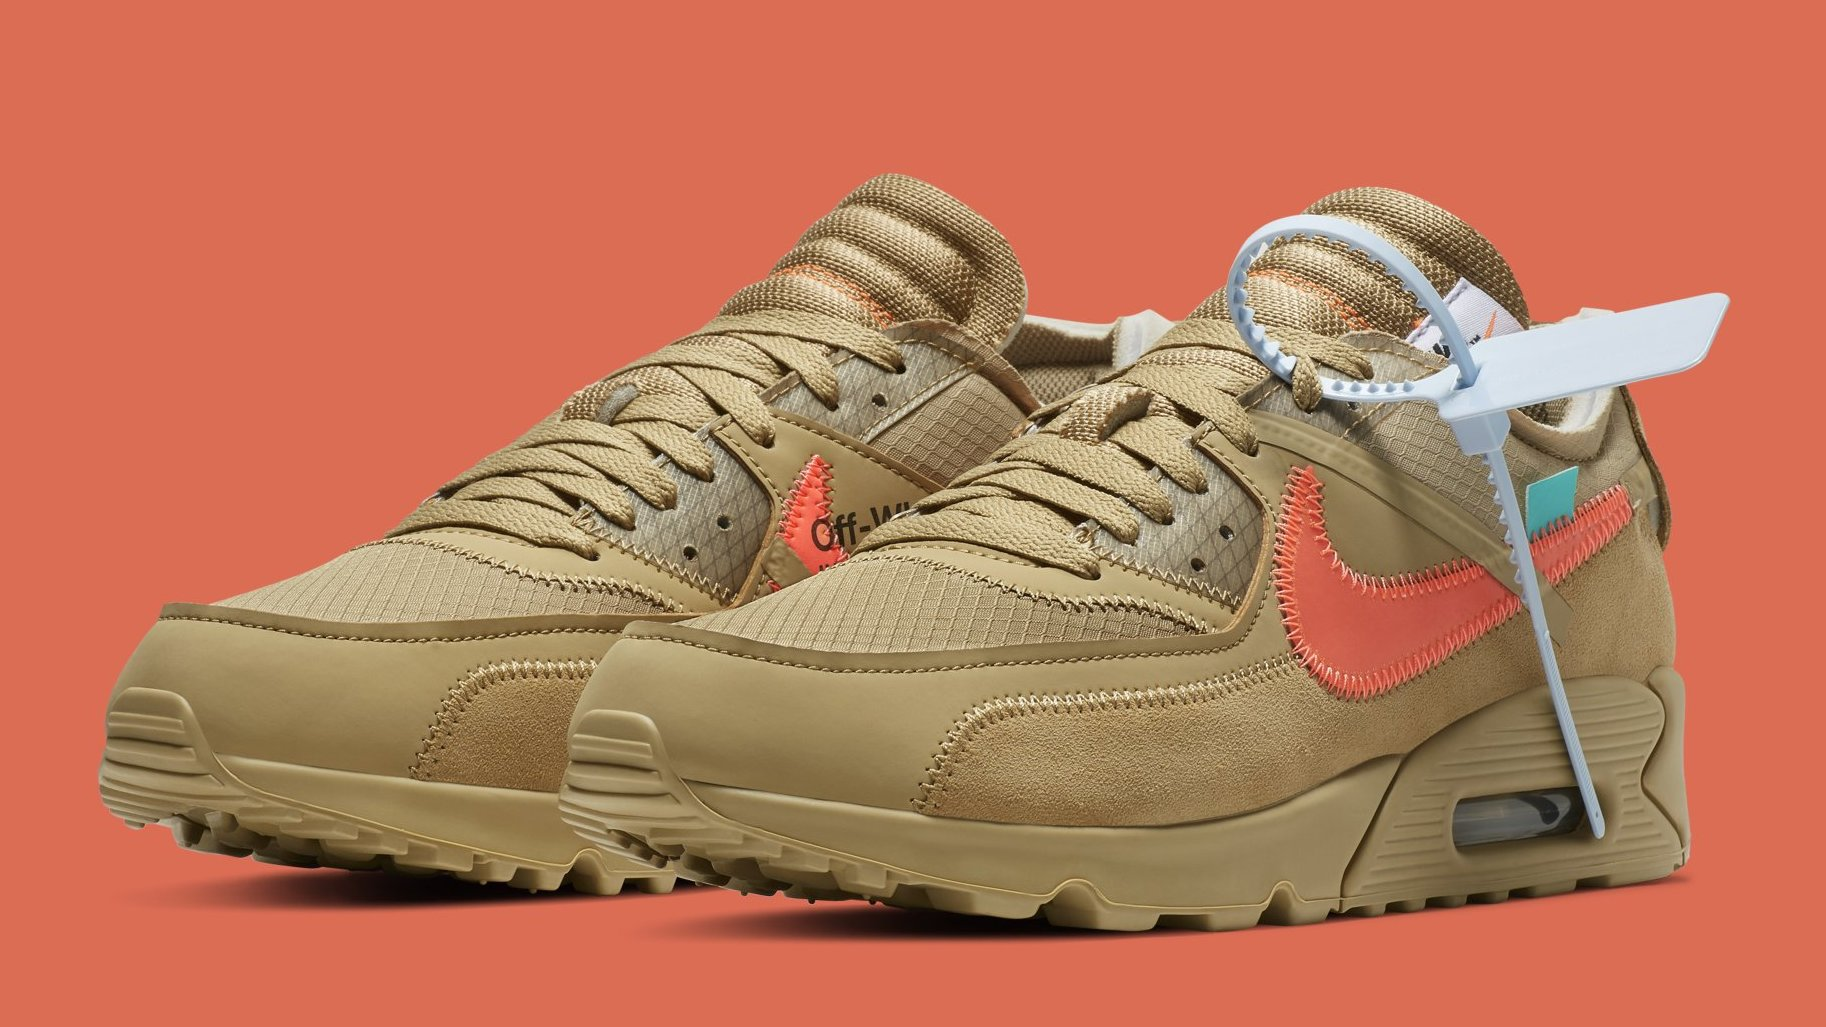 new concept e69e1 18766 Off-White x Nike Air Max 90  Desert Ore  AA7293-200 Release Date   Sole  Collector